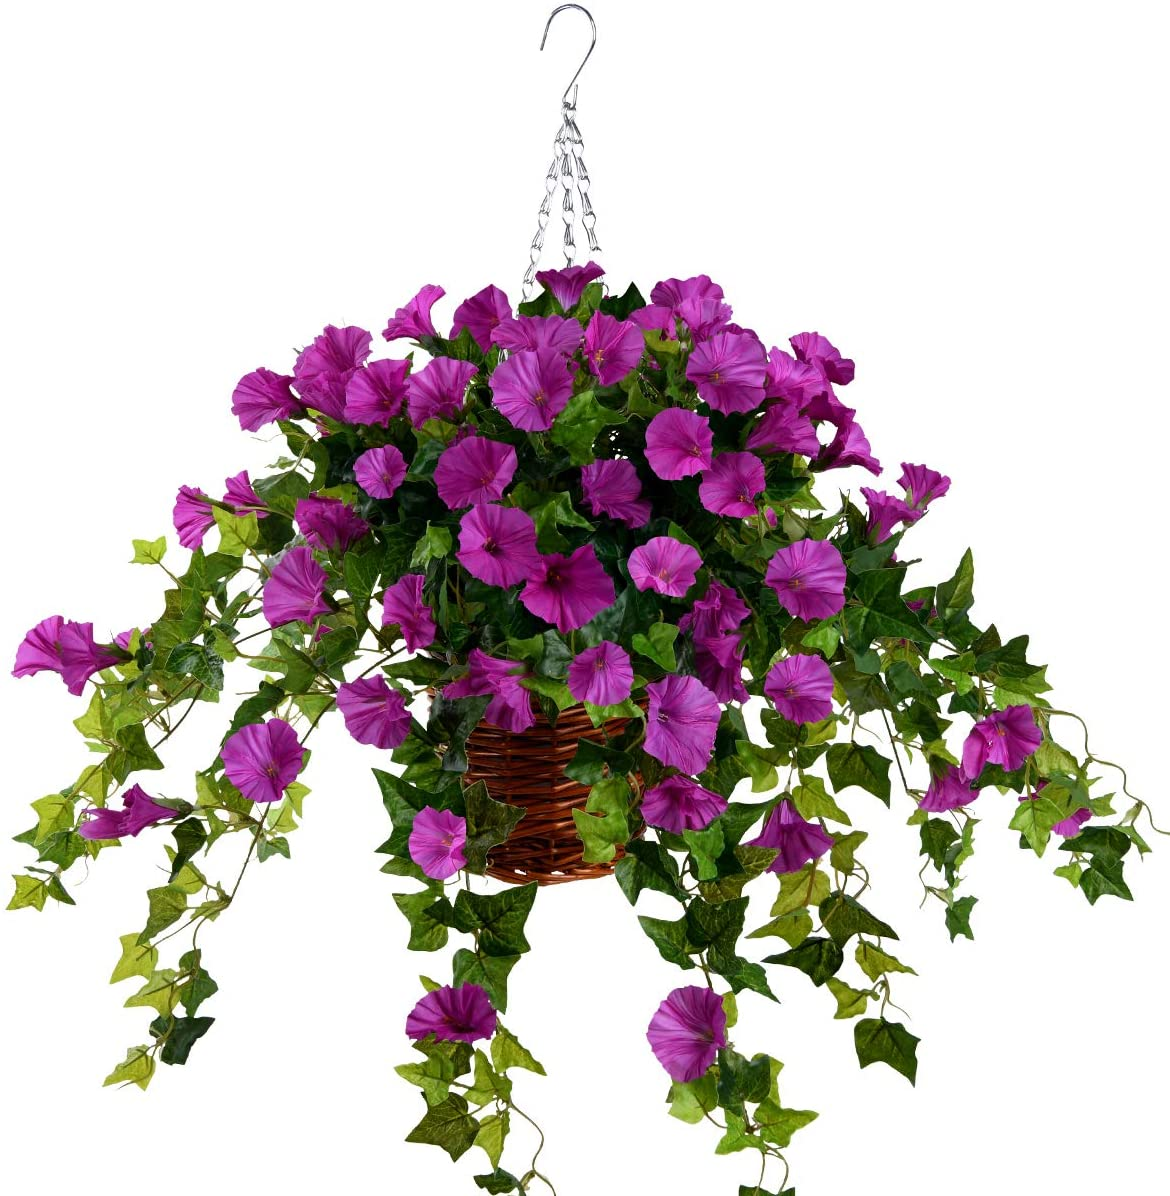 Hanging Basket with Artificial Vine Silk Petunia Flowers for Outdoor/Indoor,Artificial Hanging Plant in Basket,Morning Glories Ivy Basket Artificial Hanging Plant for Patio Lawn Garden Decor (Purple)